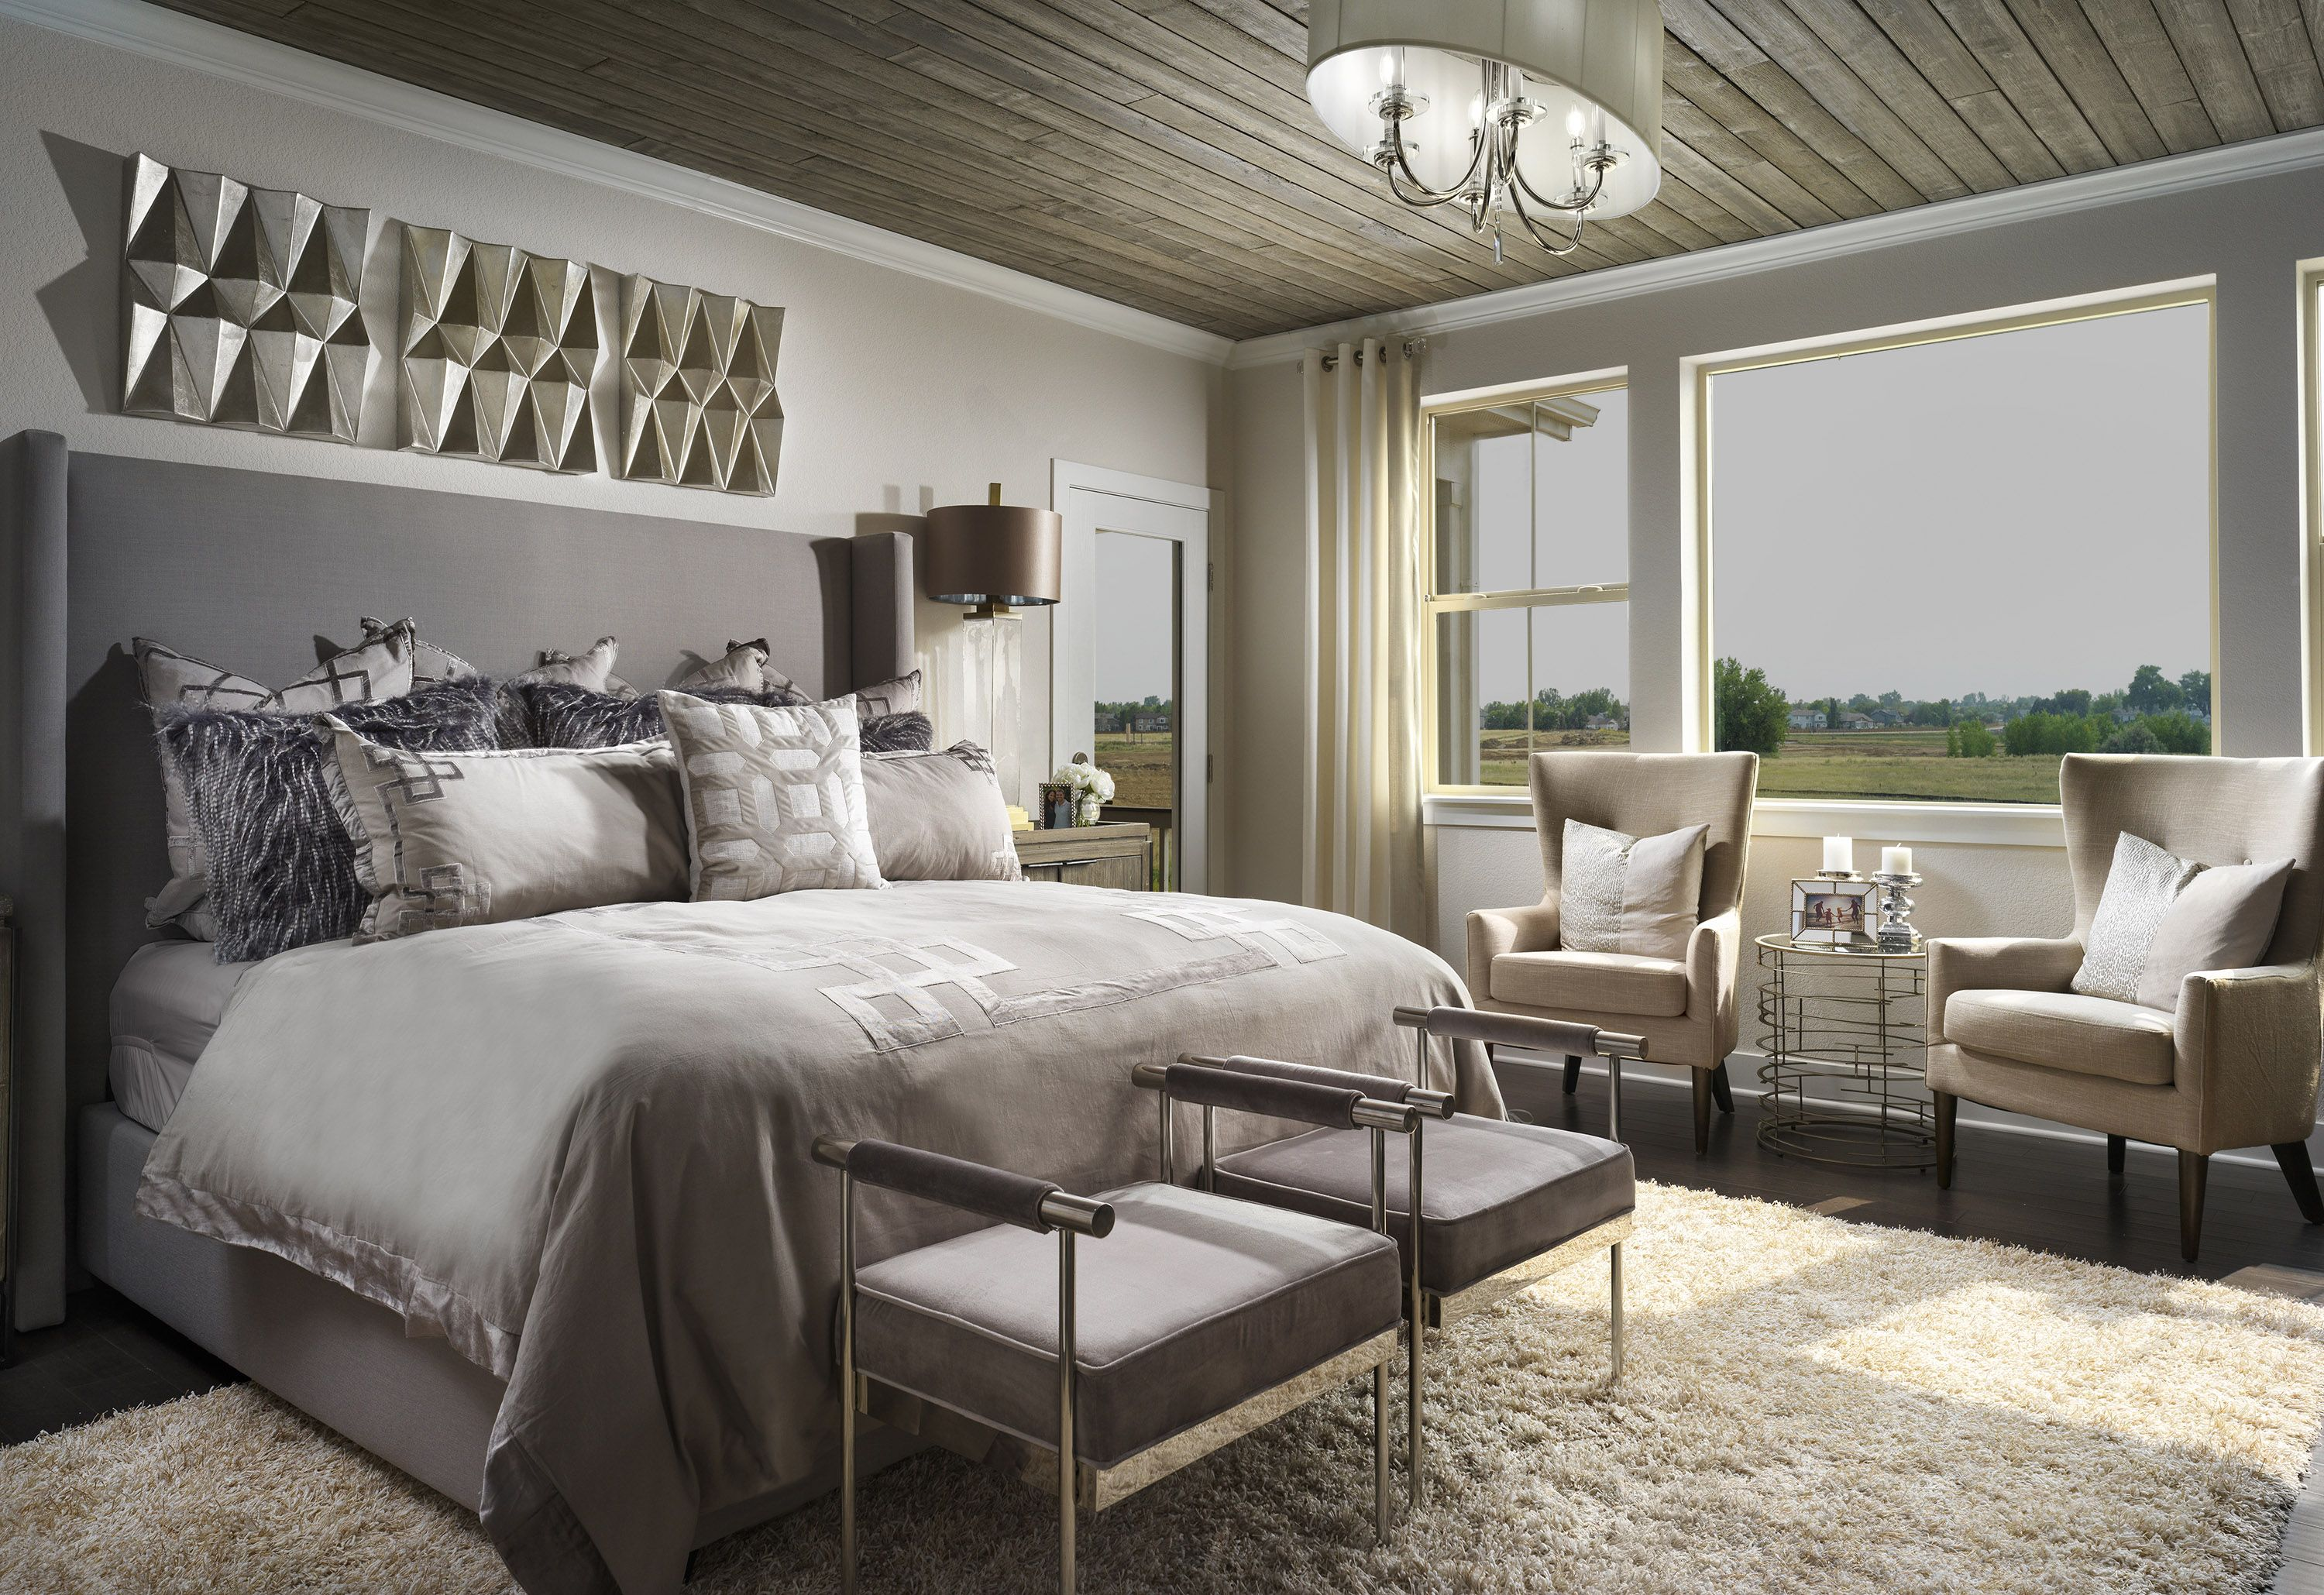 10 Interior Design Tips For Mixing Metals And Textures Interior